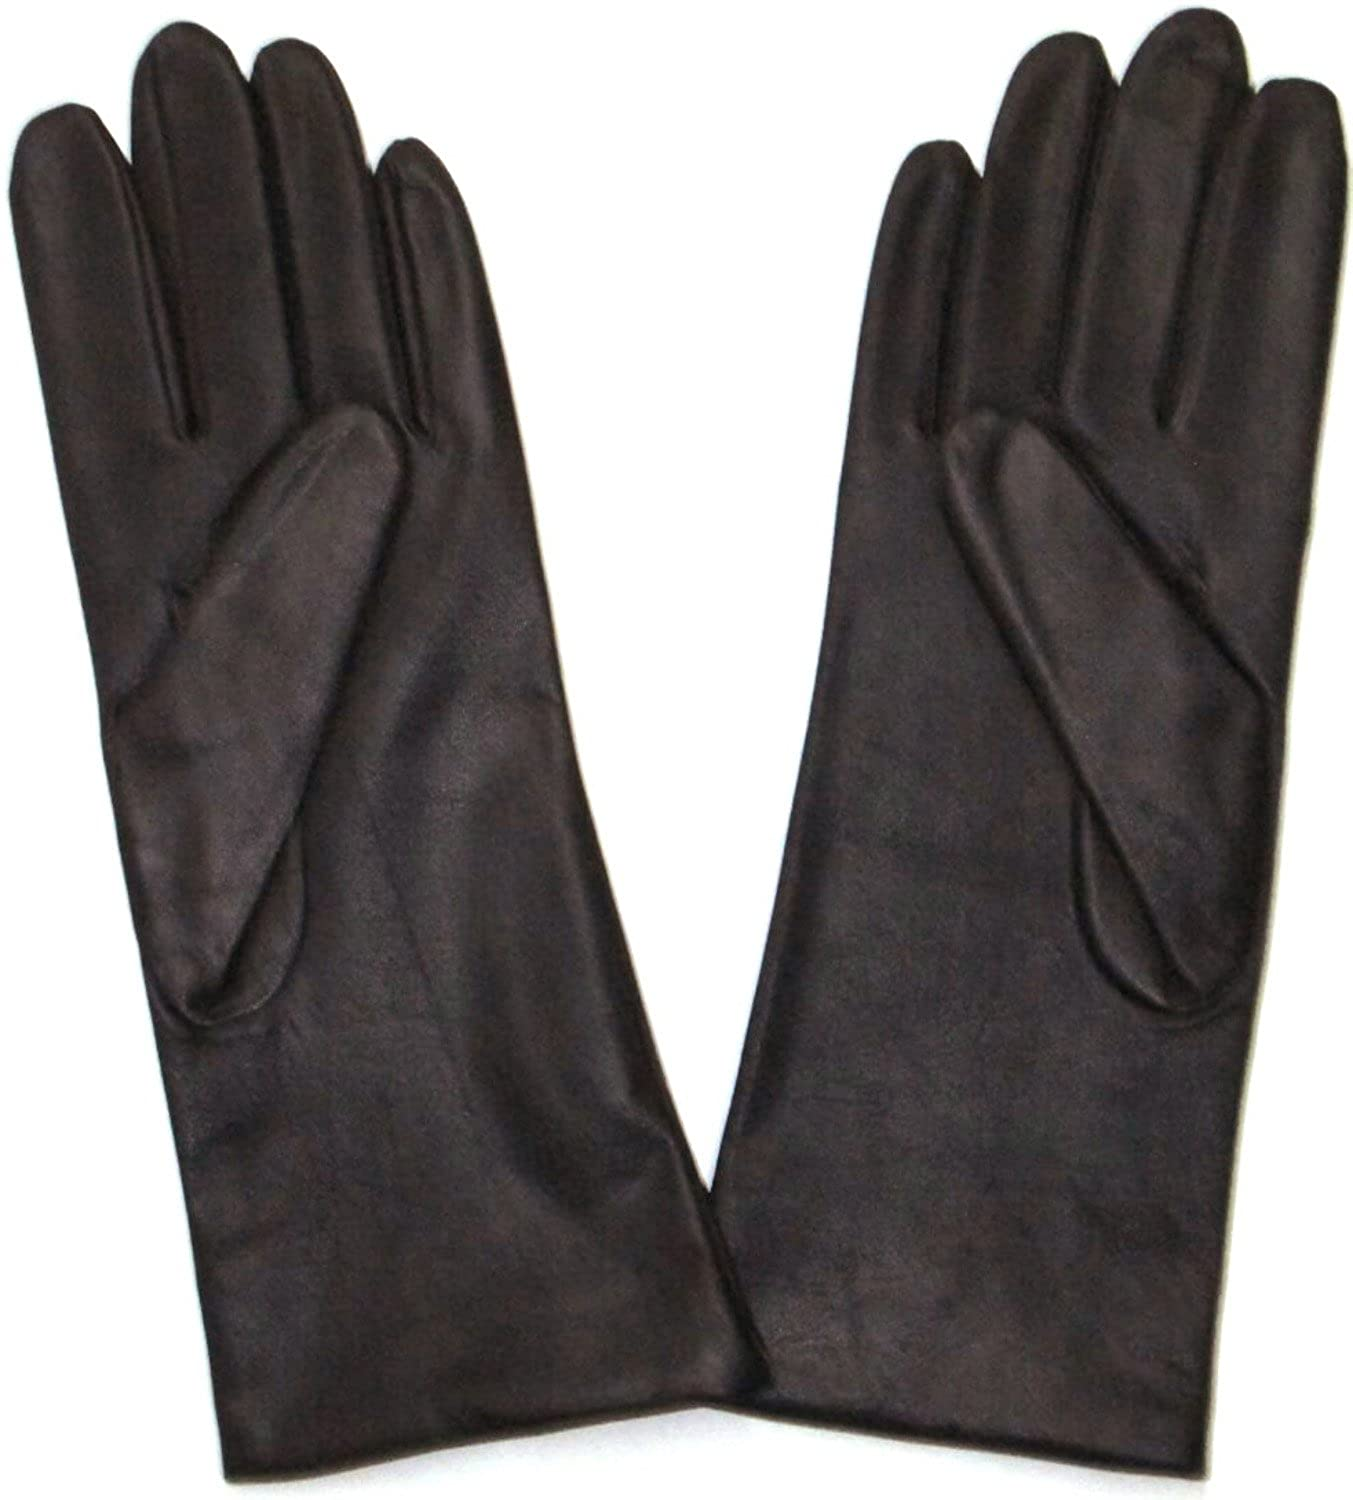 Victorian Inspired Womens Clothing Fownes Womens Cashmere Lined Lambskin Leather Gloves $25.90 AT vintagedancer.com